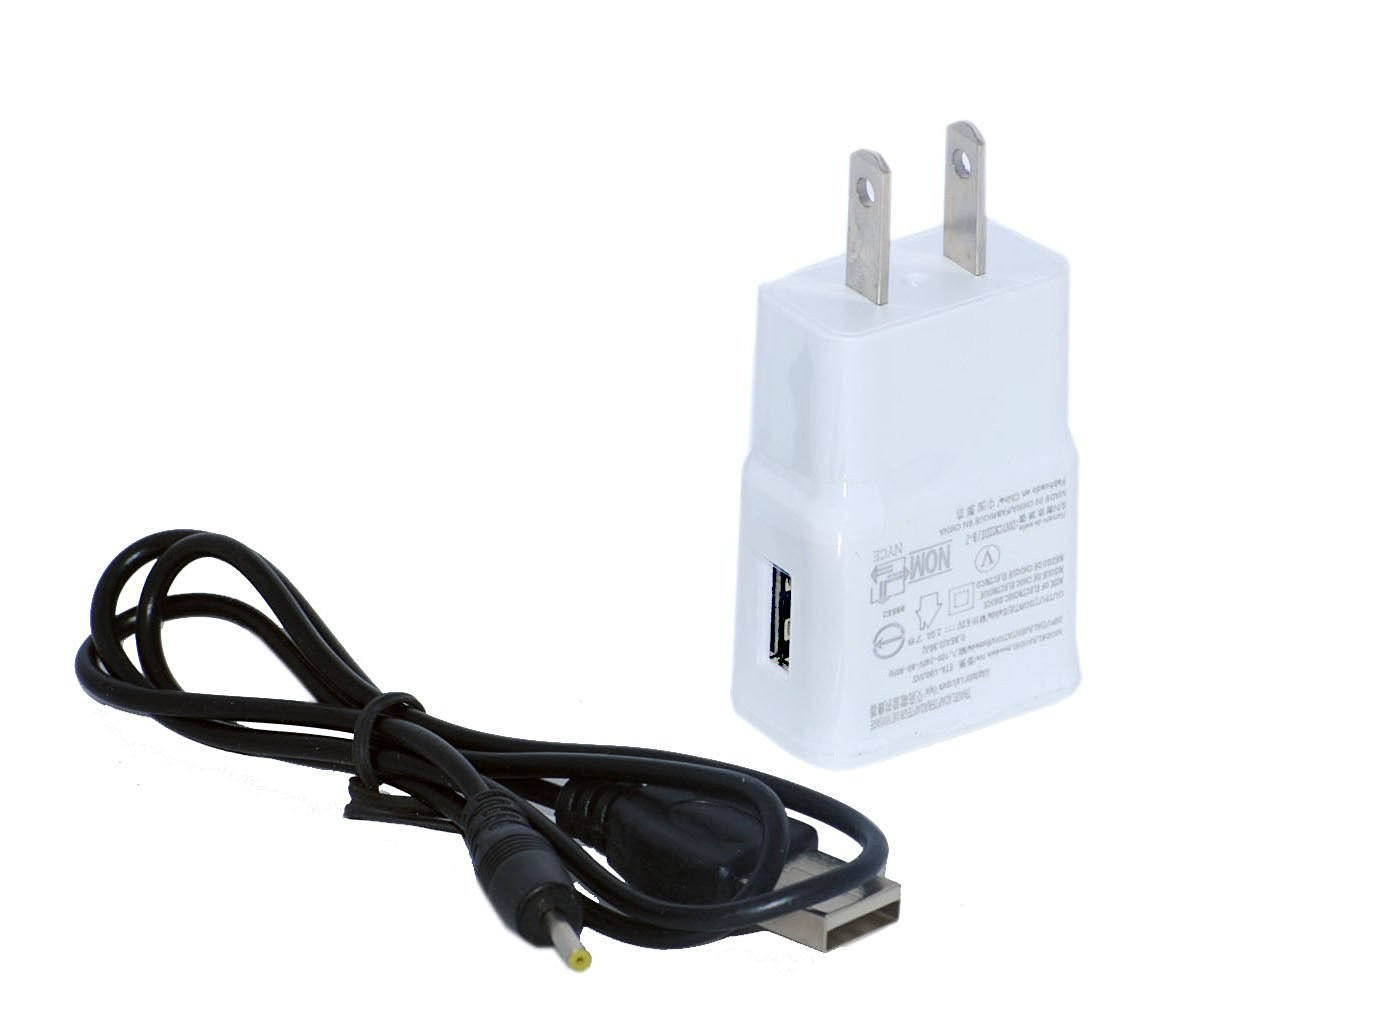 USB Cord for Toshiba Encore mini WT7 C 16 Tablet 2A AC//DC Power Charger Adapter